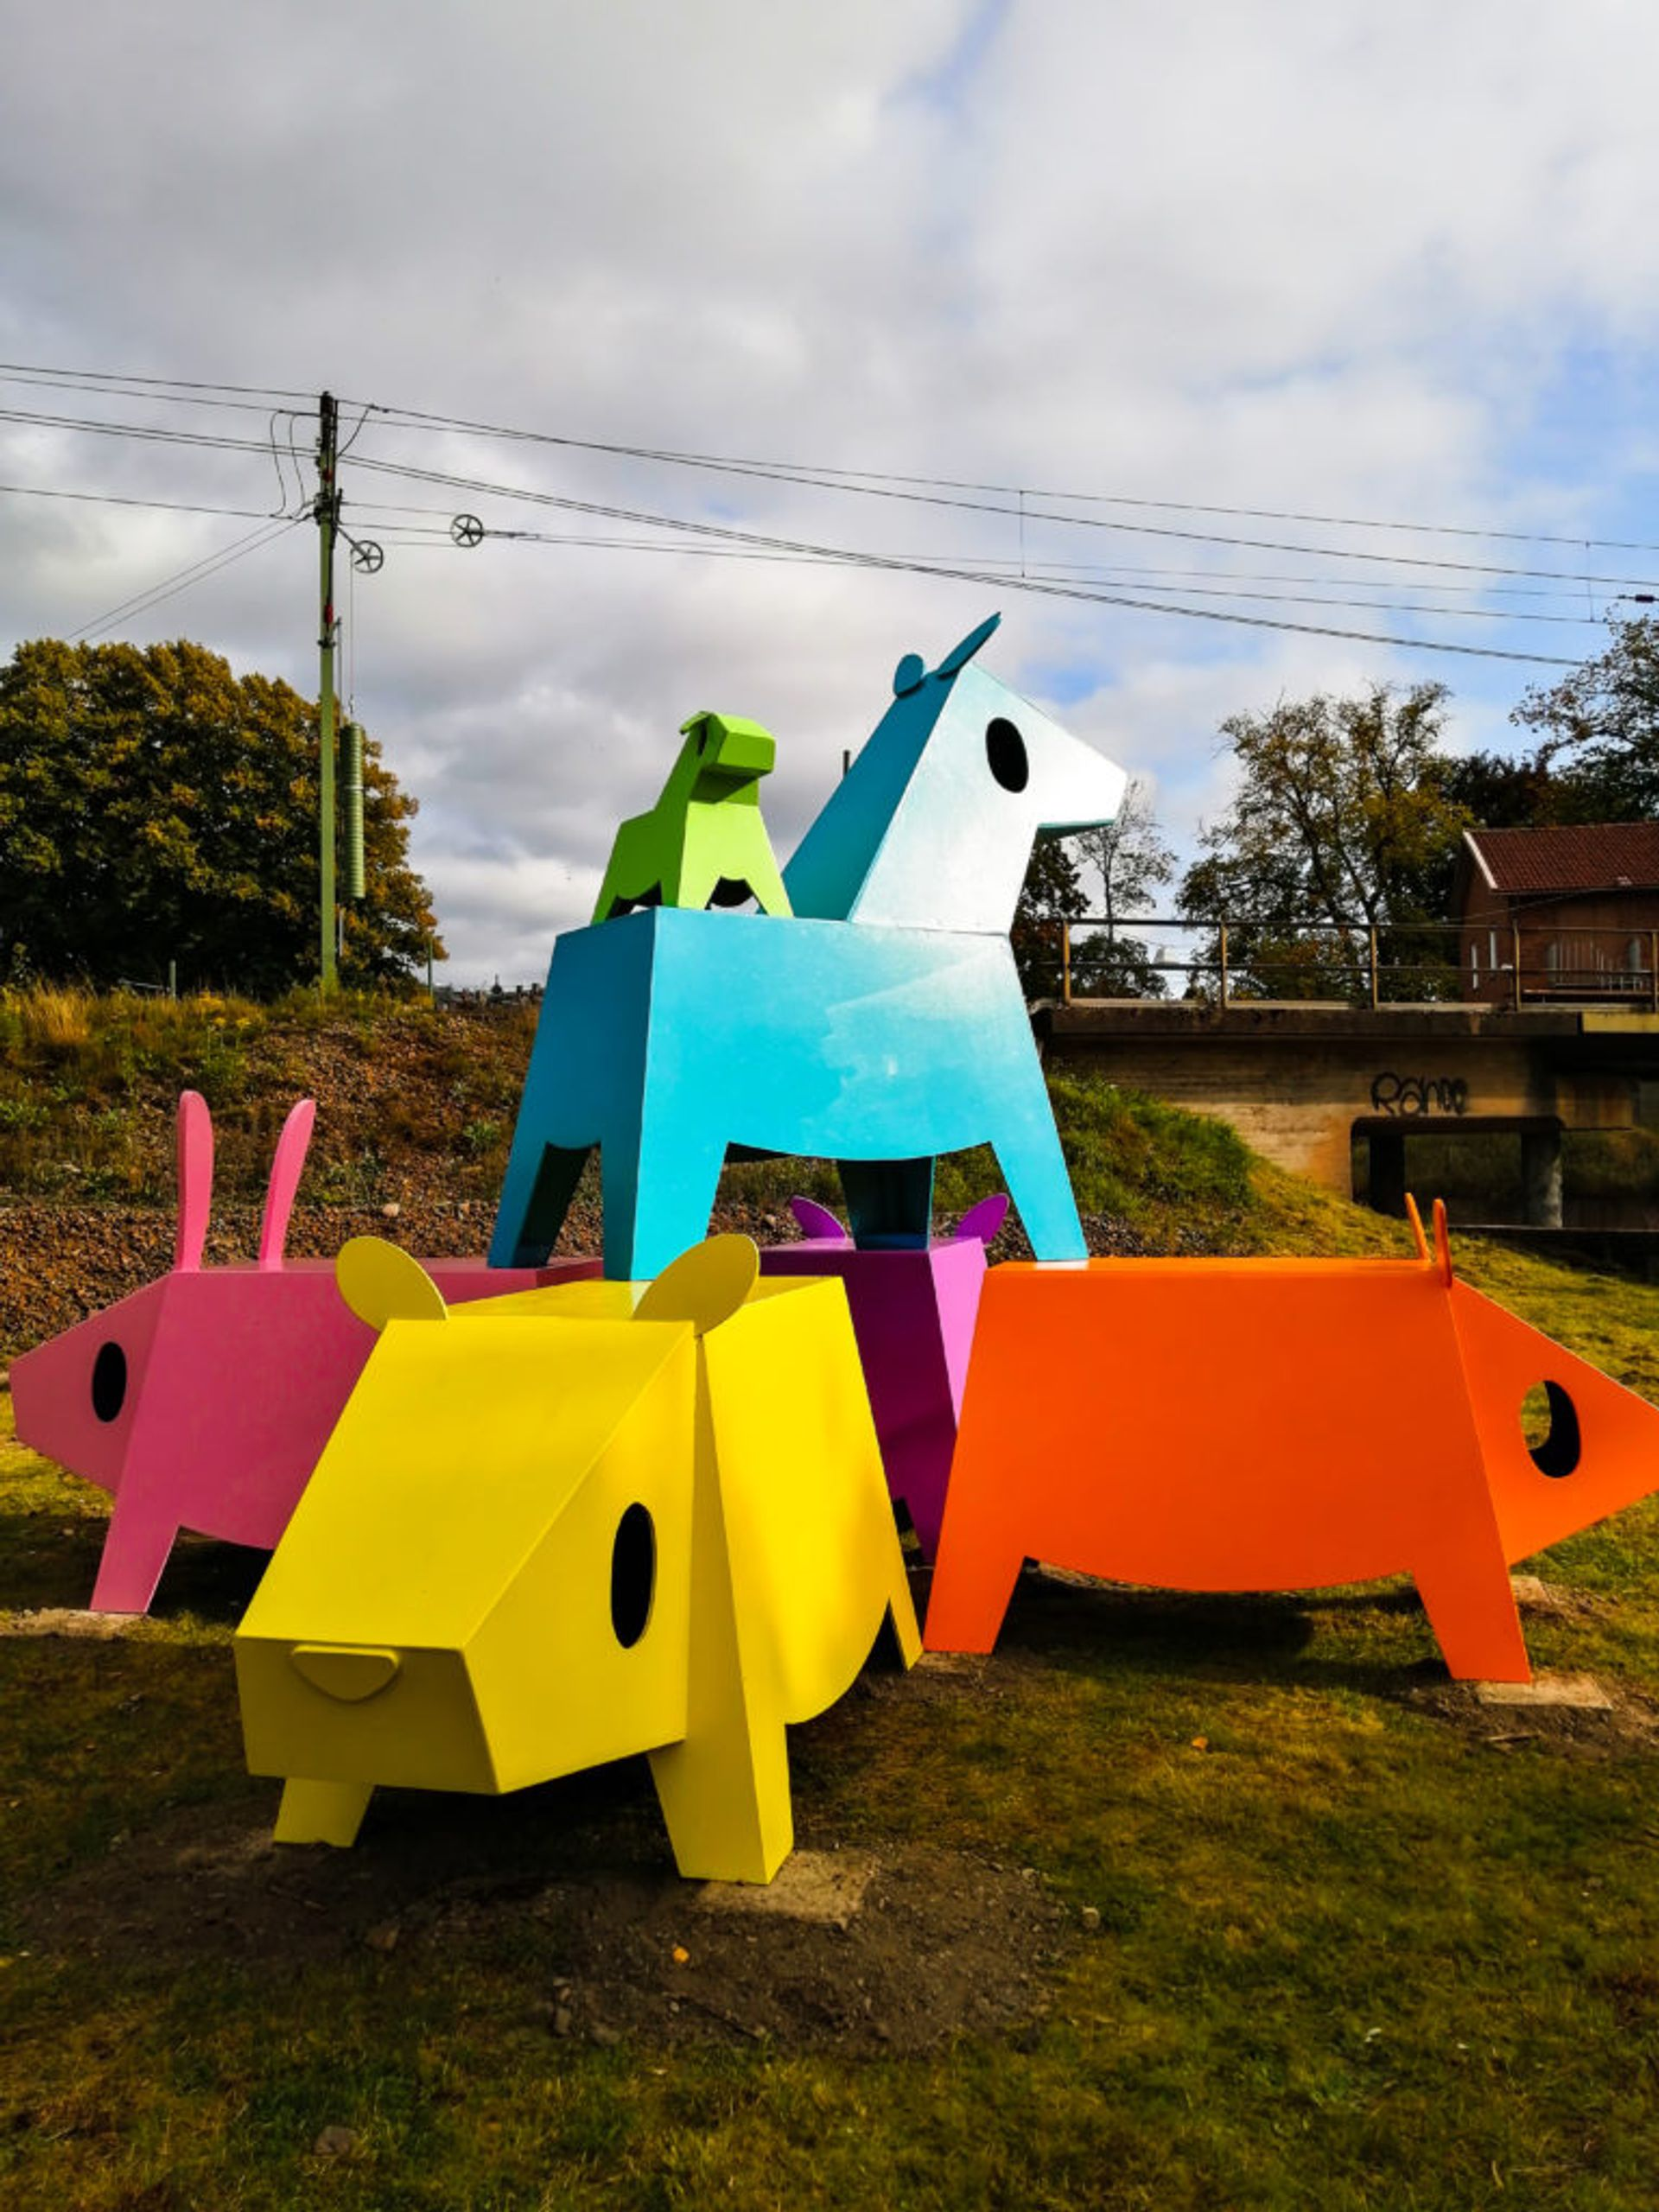 Colourful and childlike sculptures of mammals.